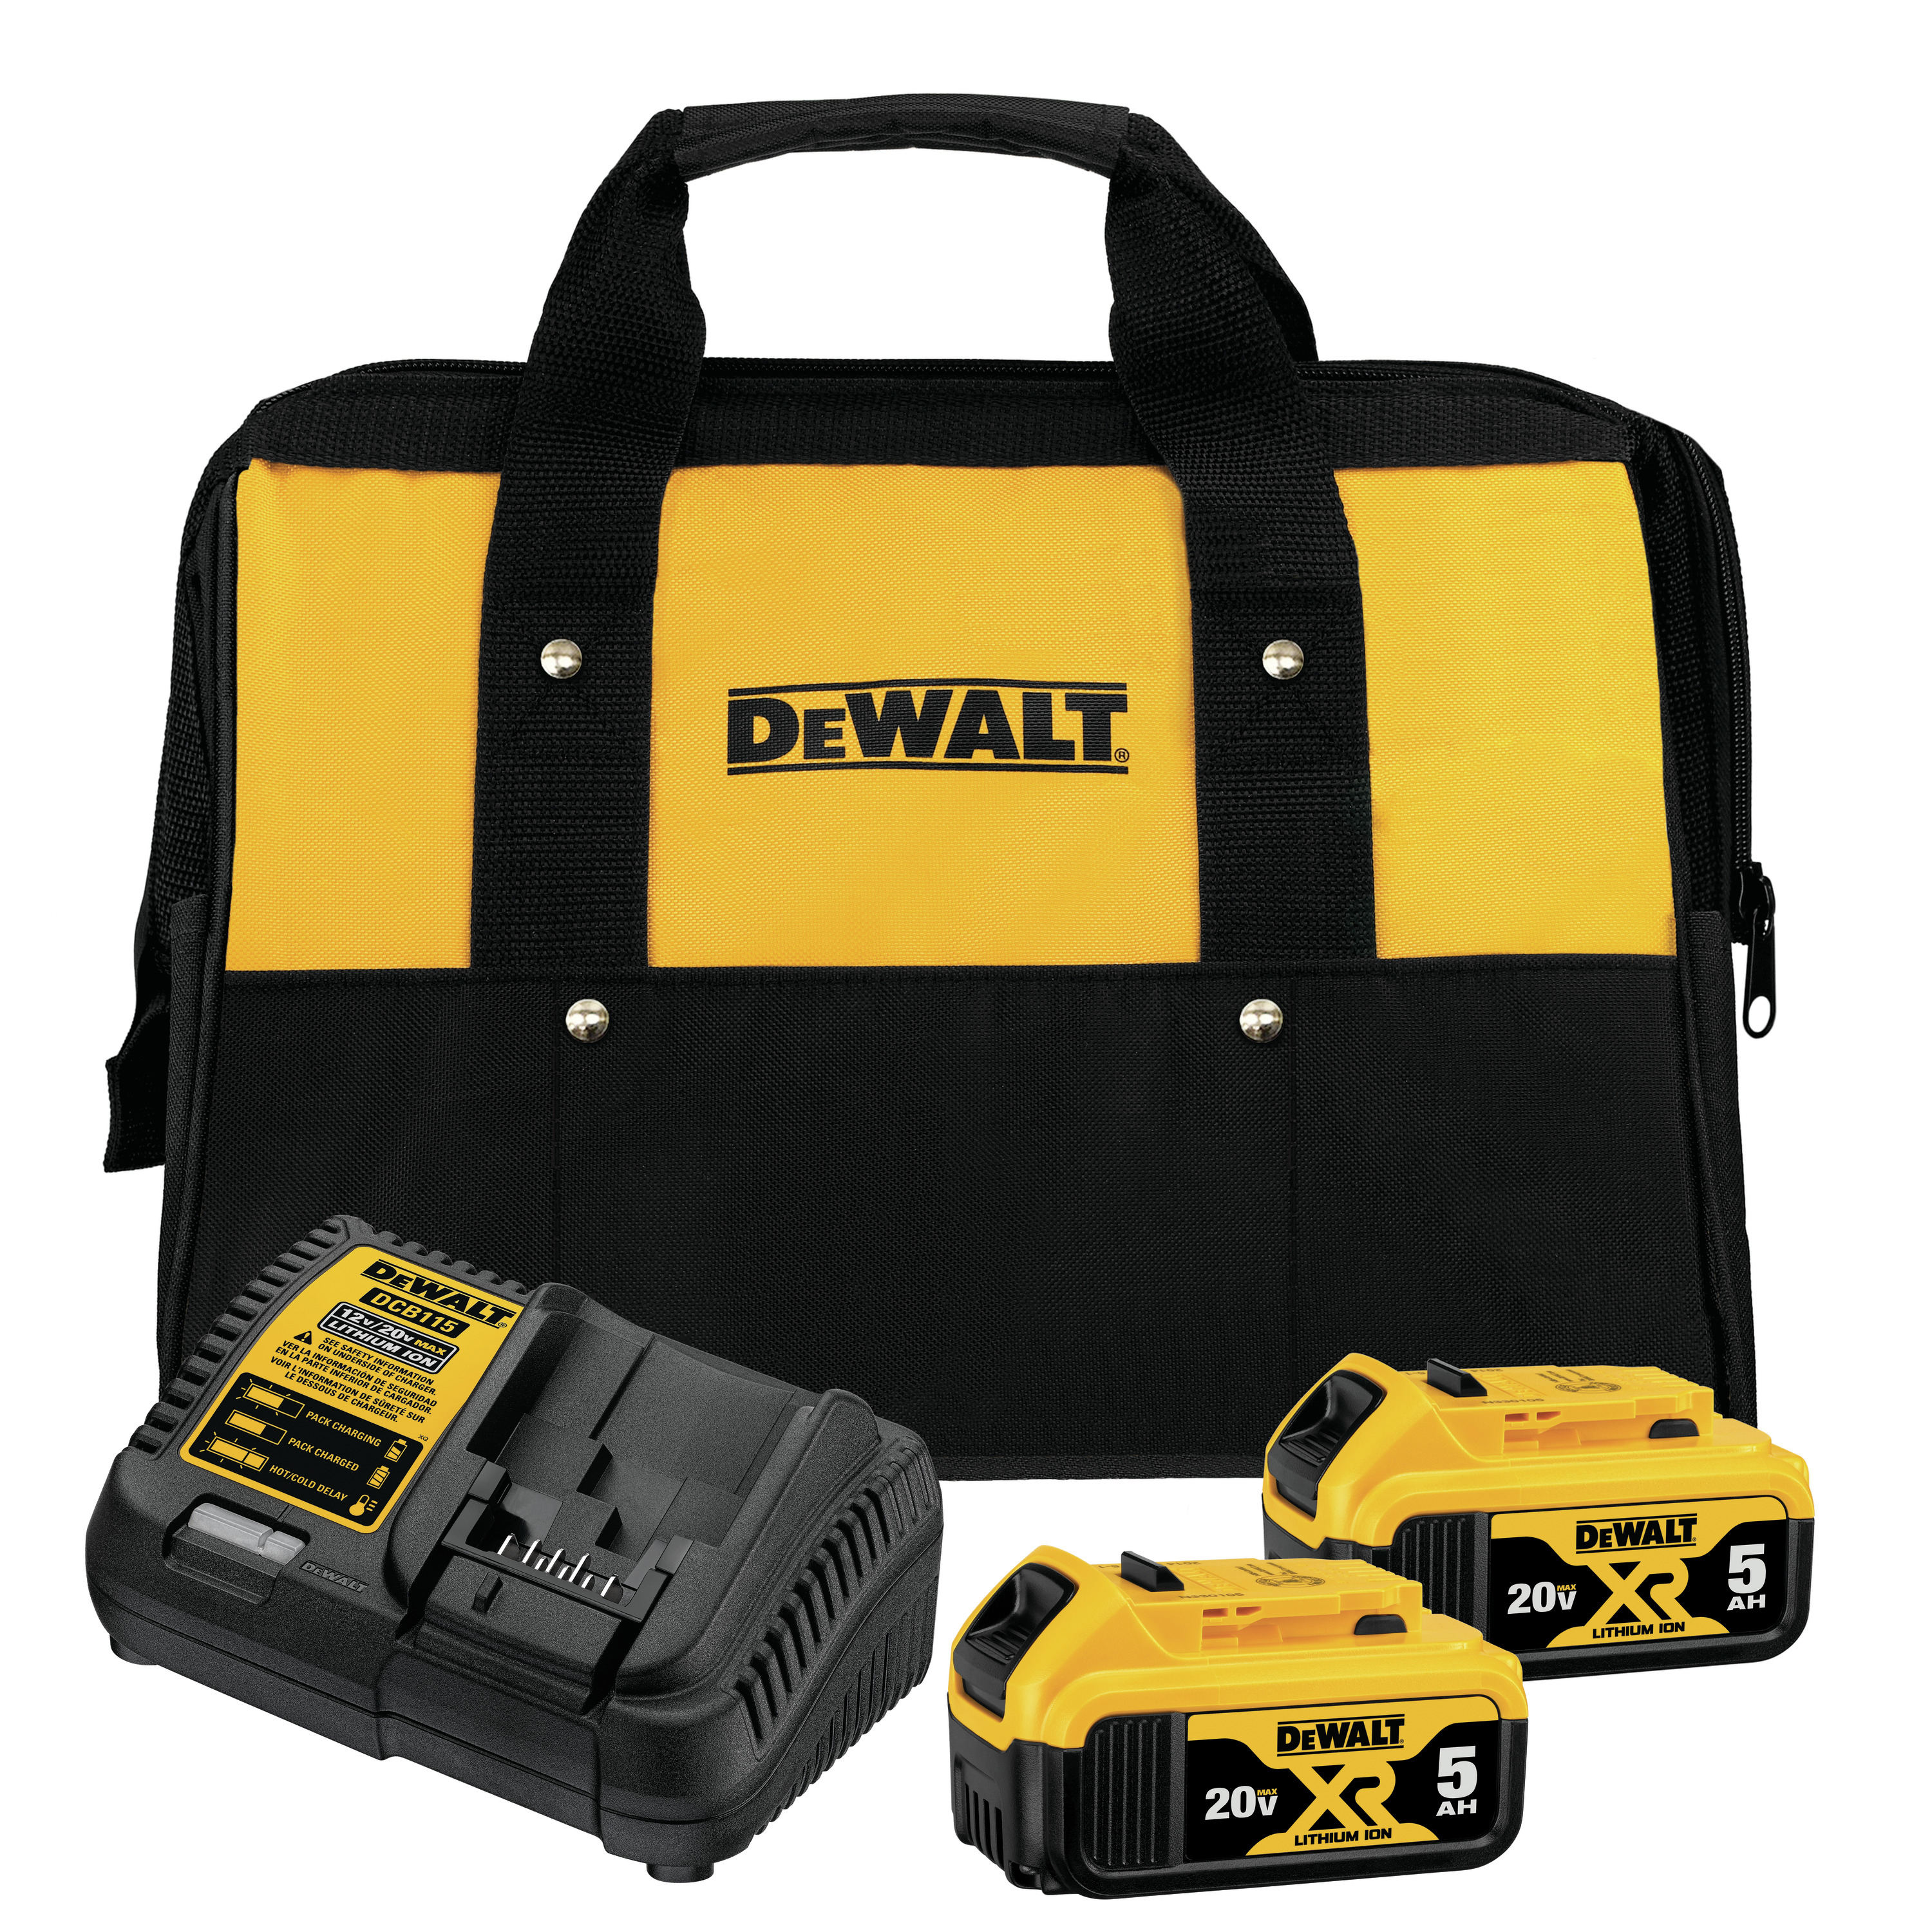 Picture of DeWALT DCB205-2CK Starter Kit, 4 A Charge, 5 Ah, 1 hr Charge, 2 -Battery, Battery Included: Yes